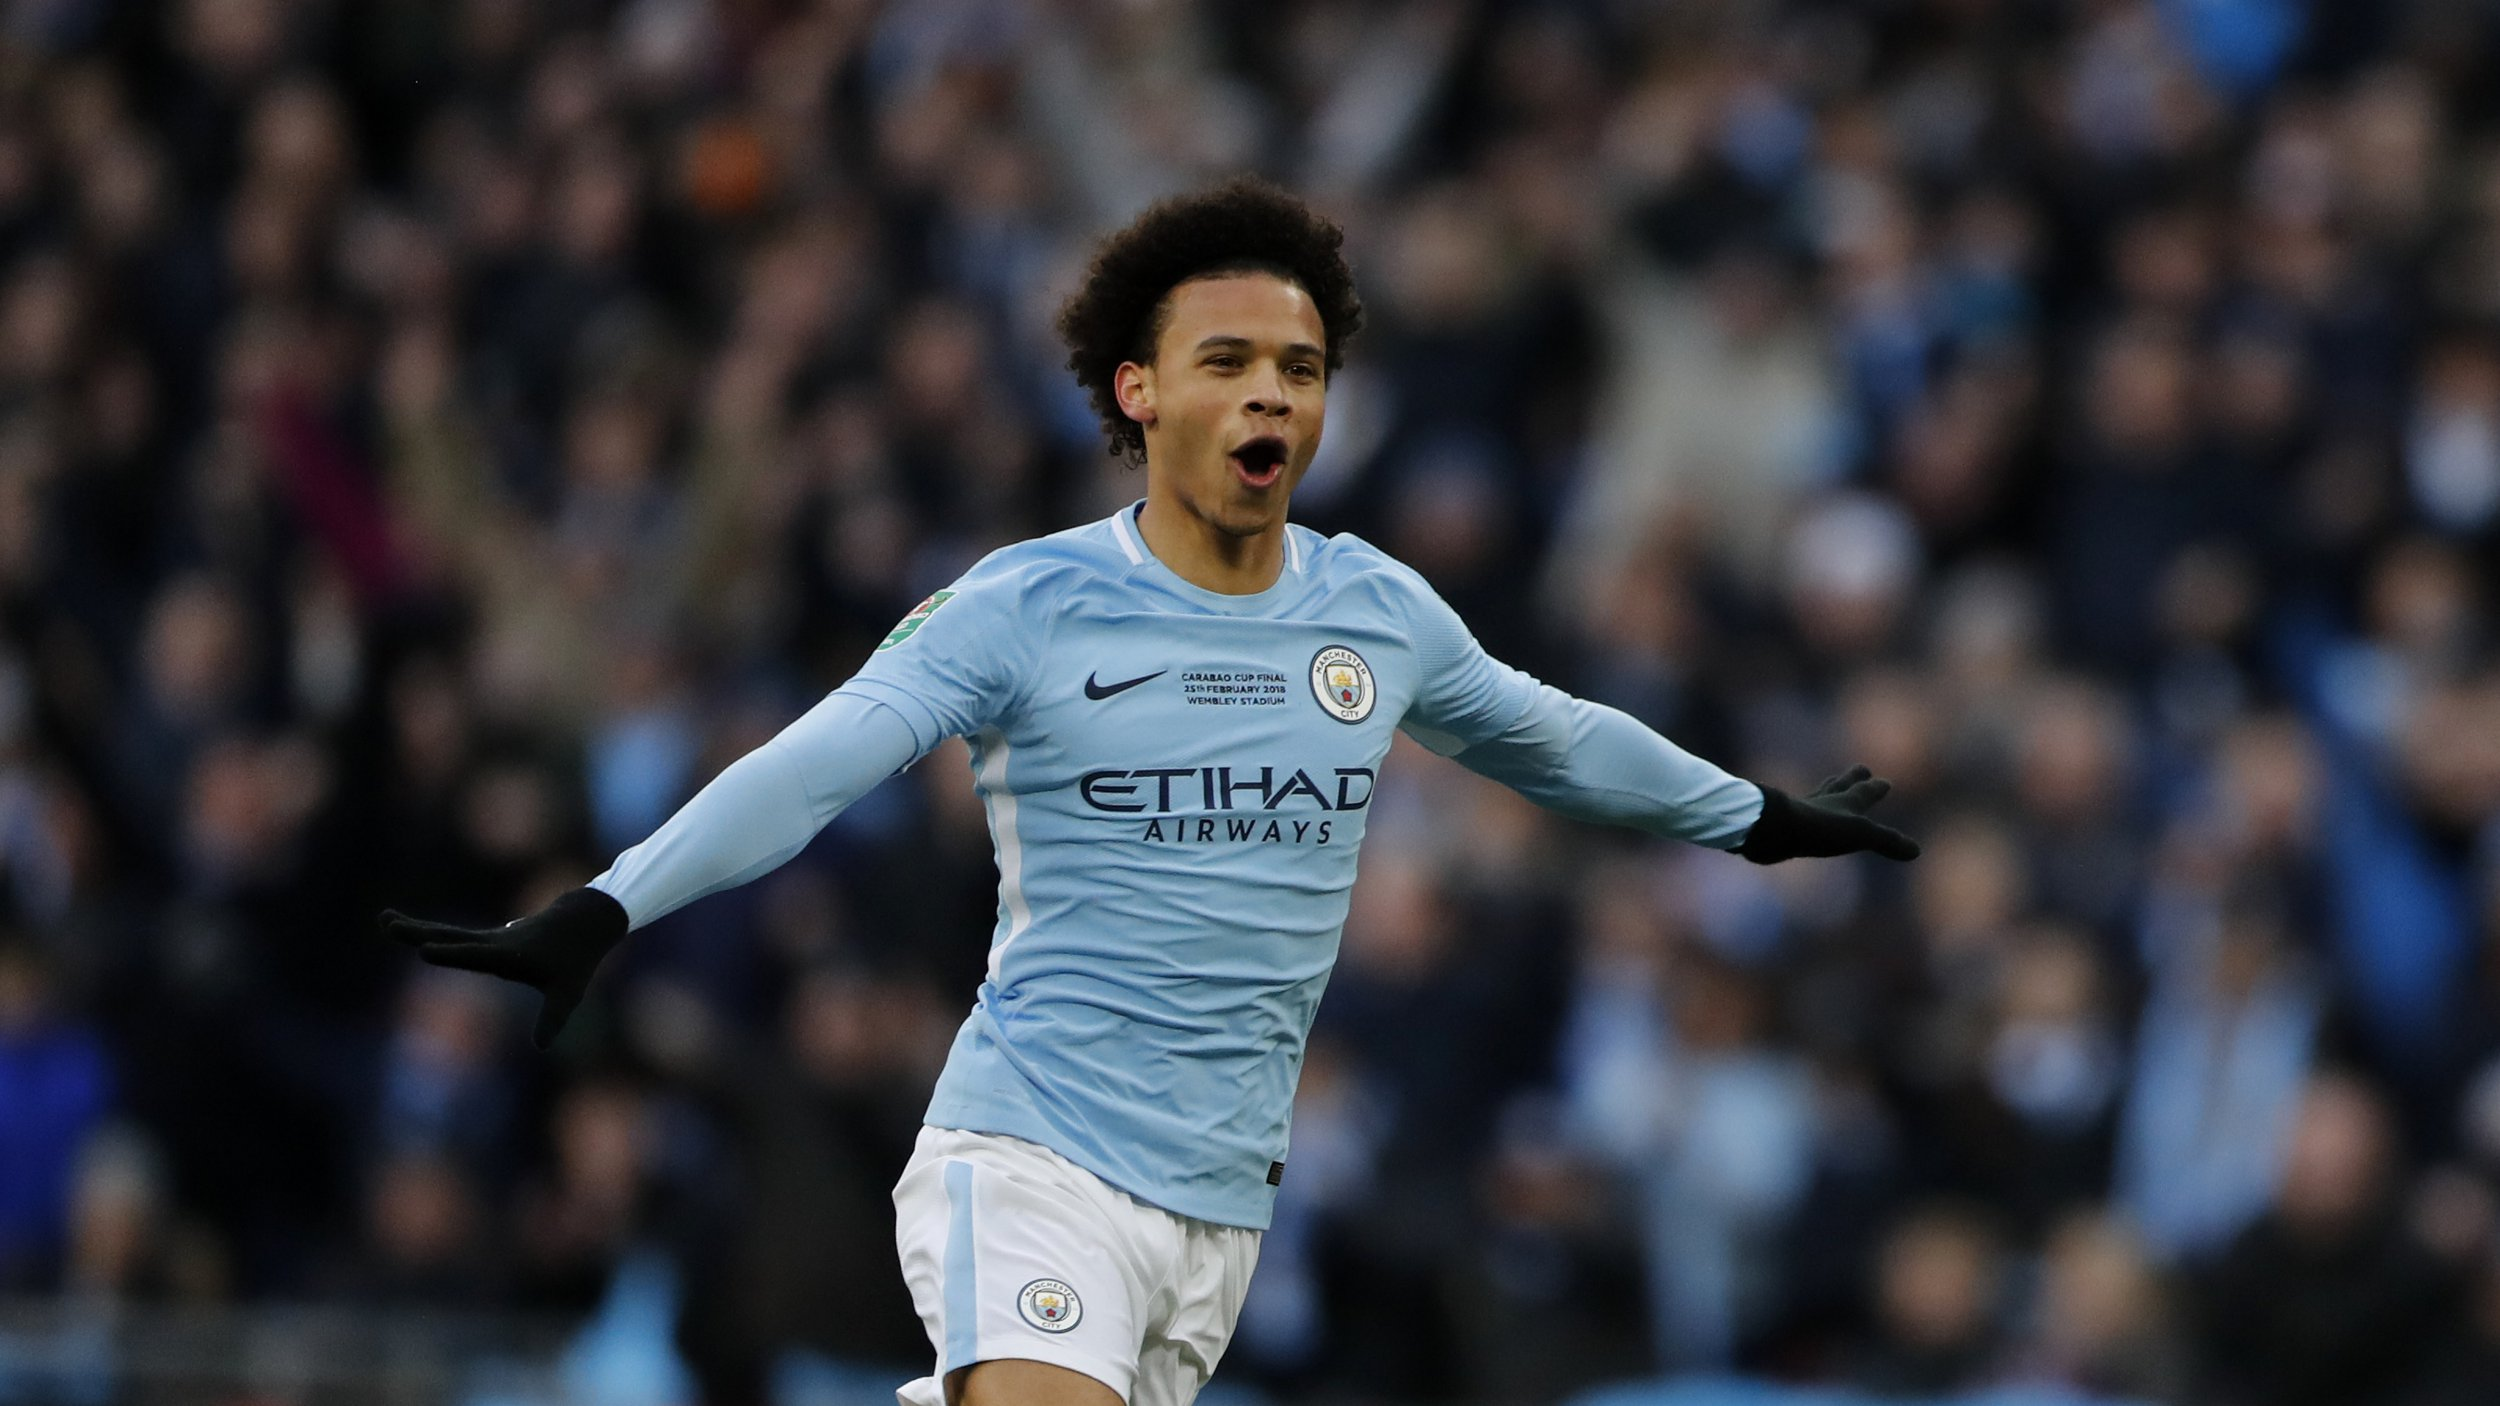 Manchester City's Leroy Sane during the English League Cup final soccer match between Arsenal and Manchester City at Wembley Stadium in London, Sunday, Feb. 25, 2018.(AP Photo/Frank Augstein)